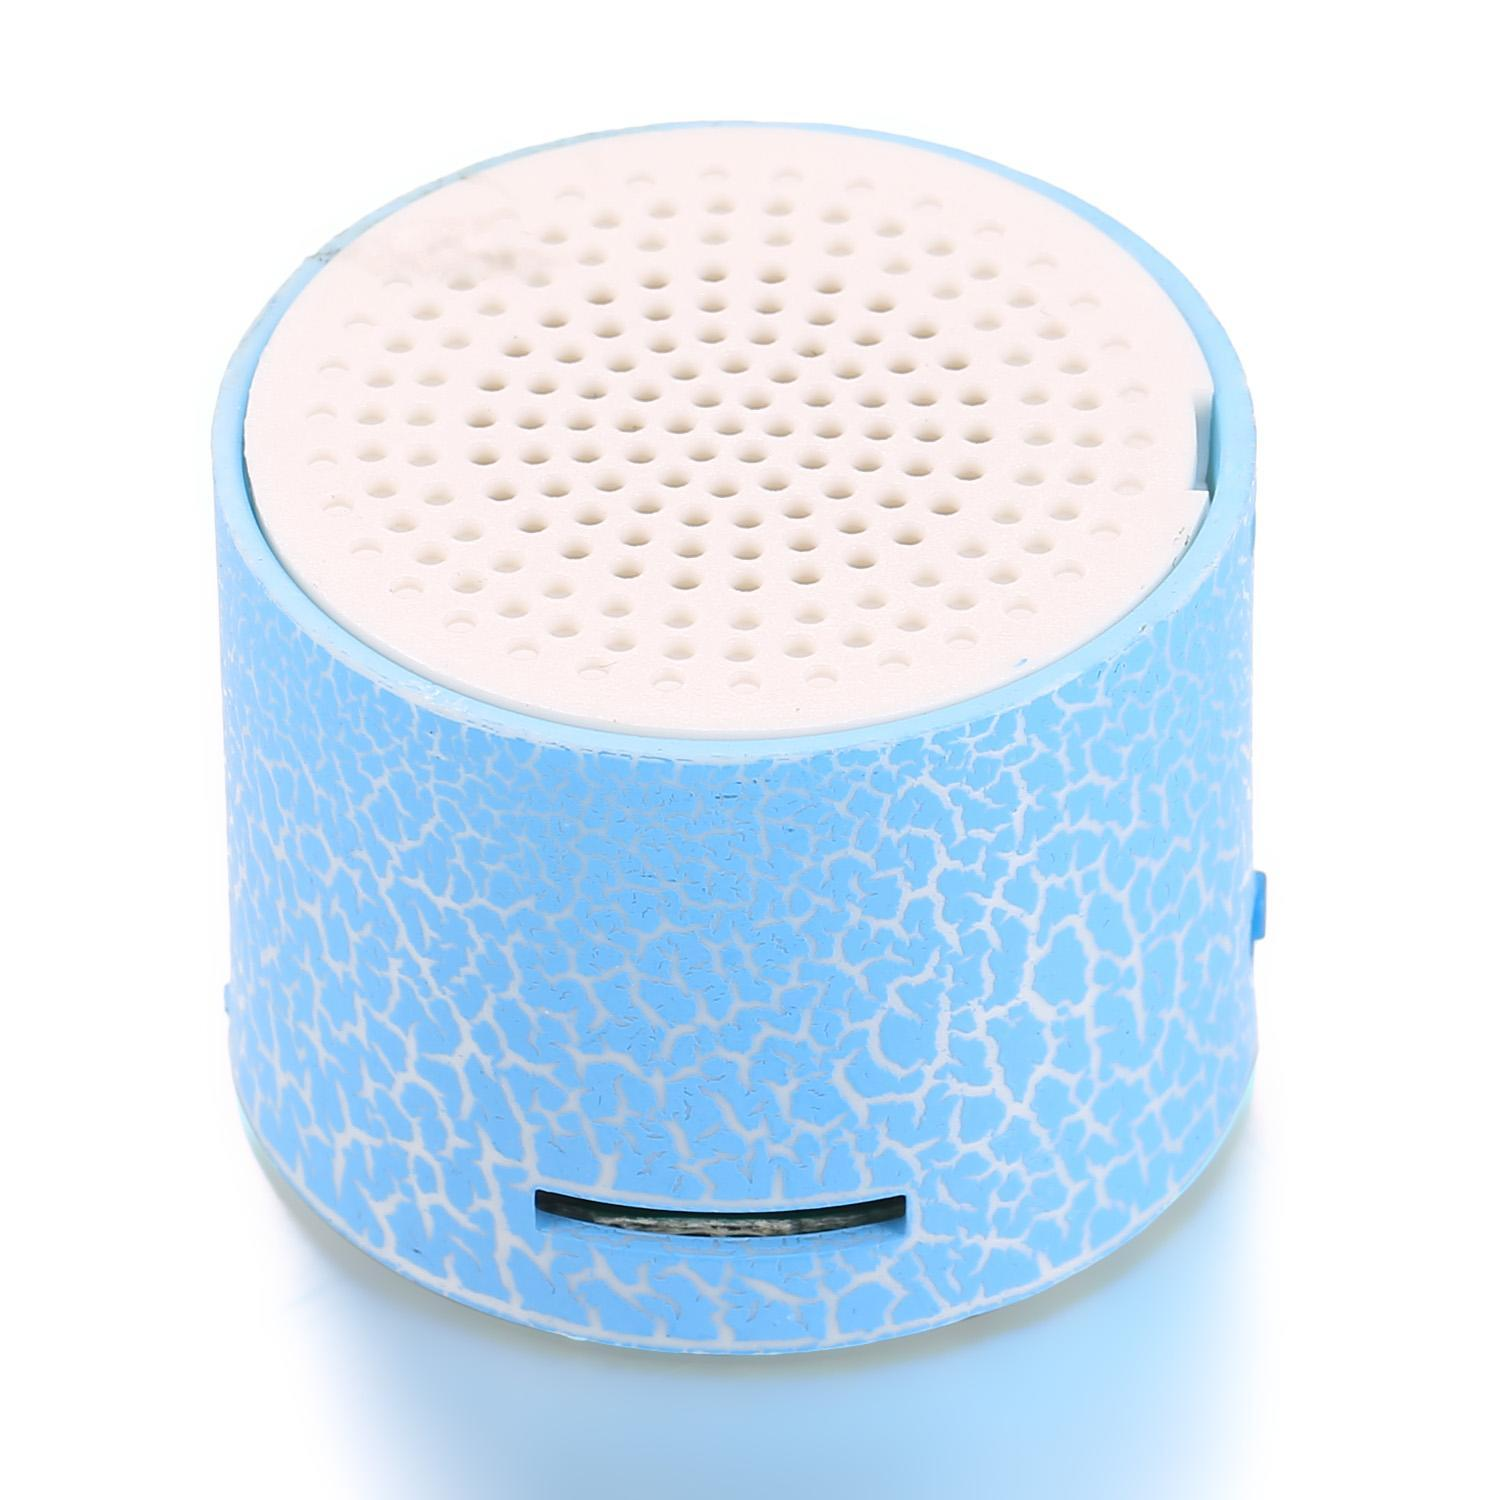 Mini Portable LED Speakers Wireless Hands Free Speaker with TF Port FSBR